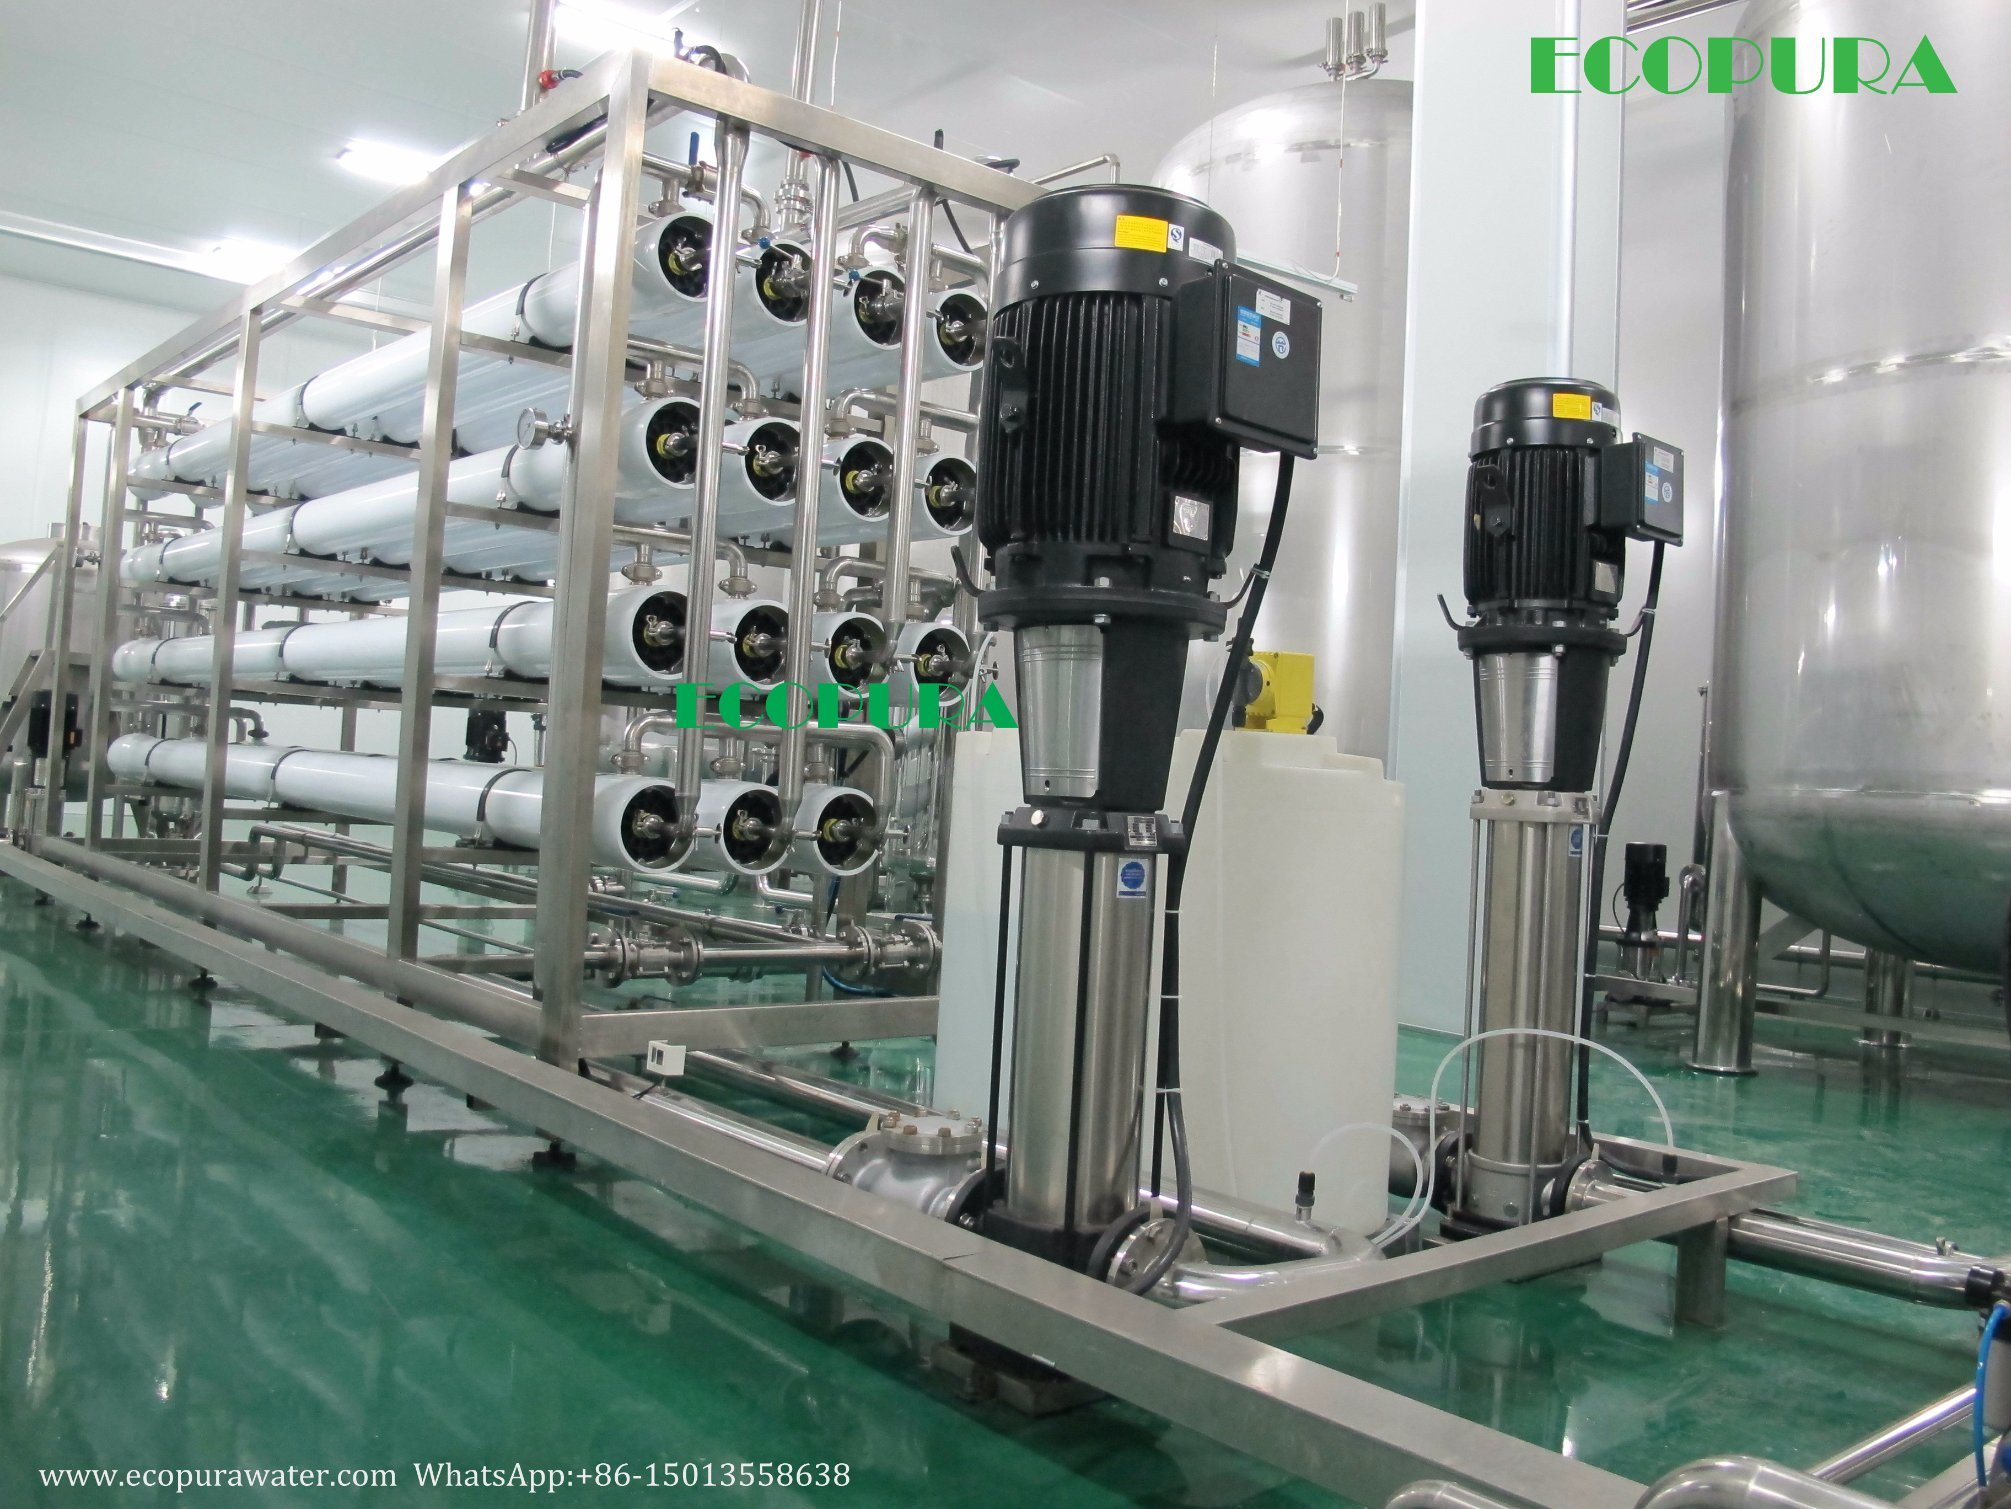 RO Water Filter System (Reverse Osmosis Water Treatment Plant)